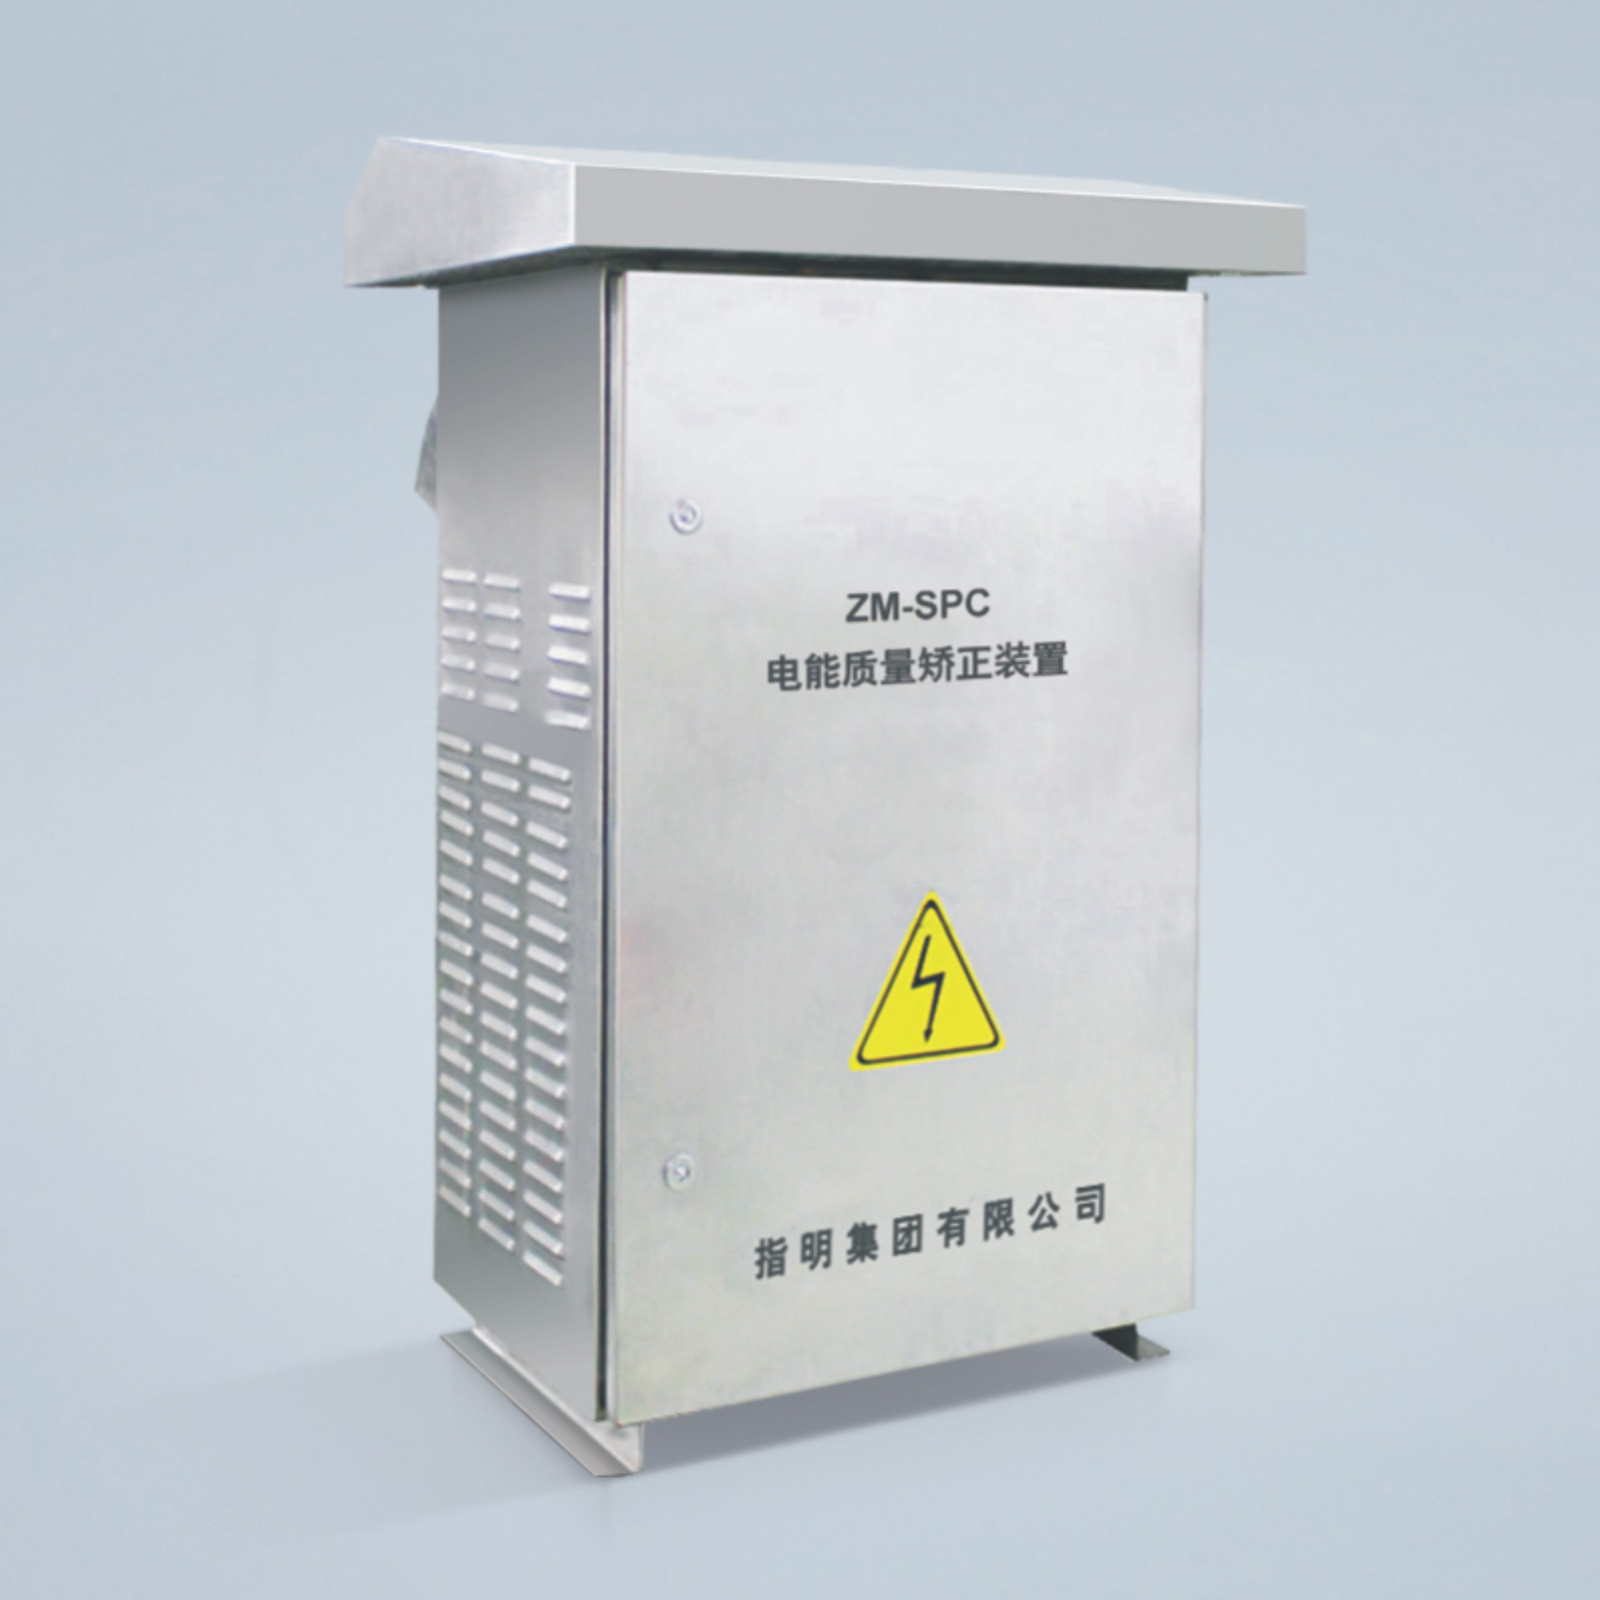 ZM-SPC Series Three phase unbalanced device